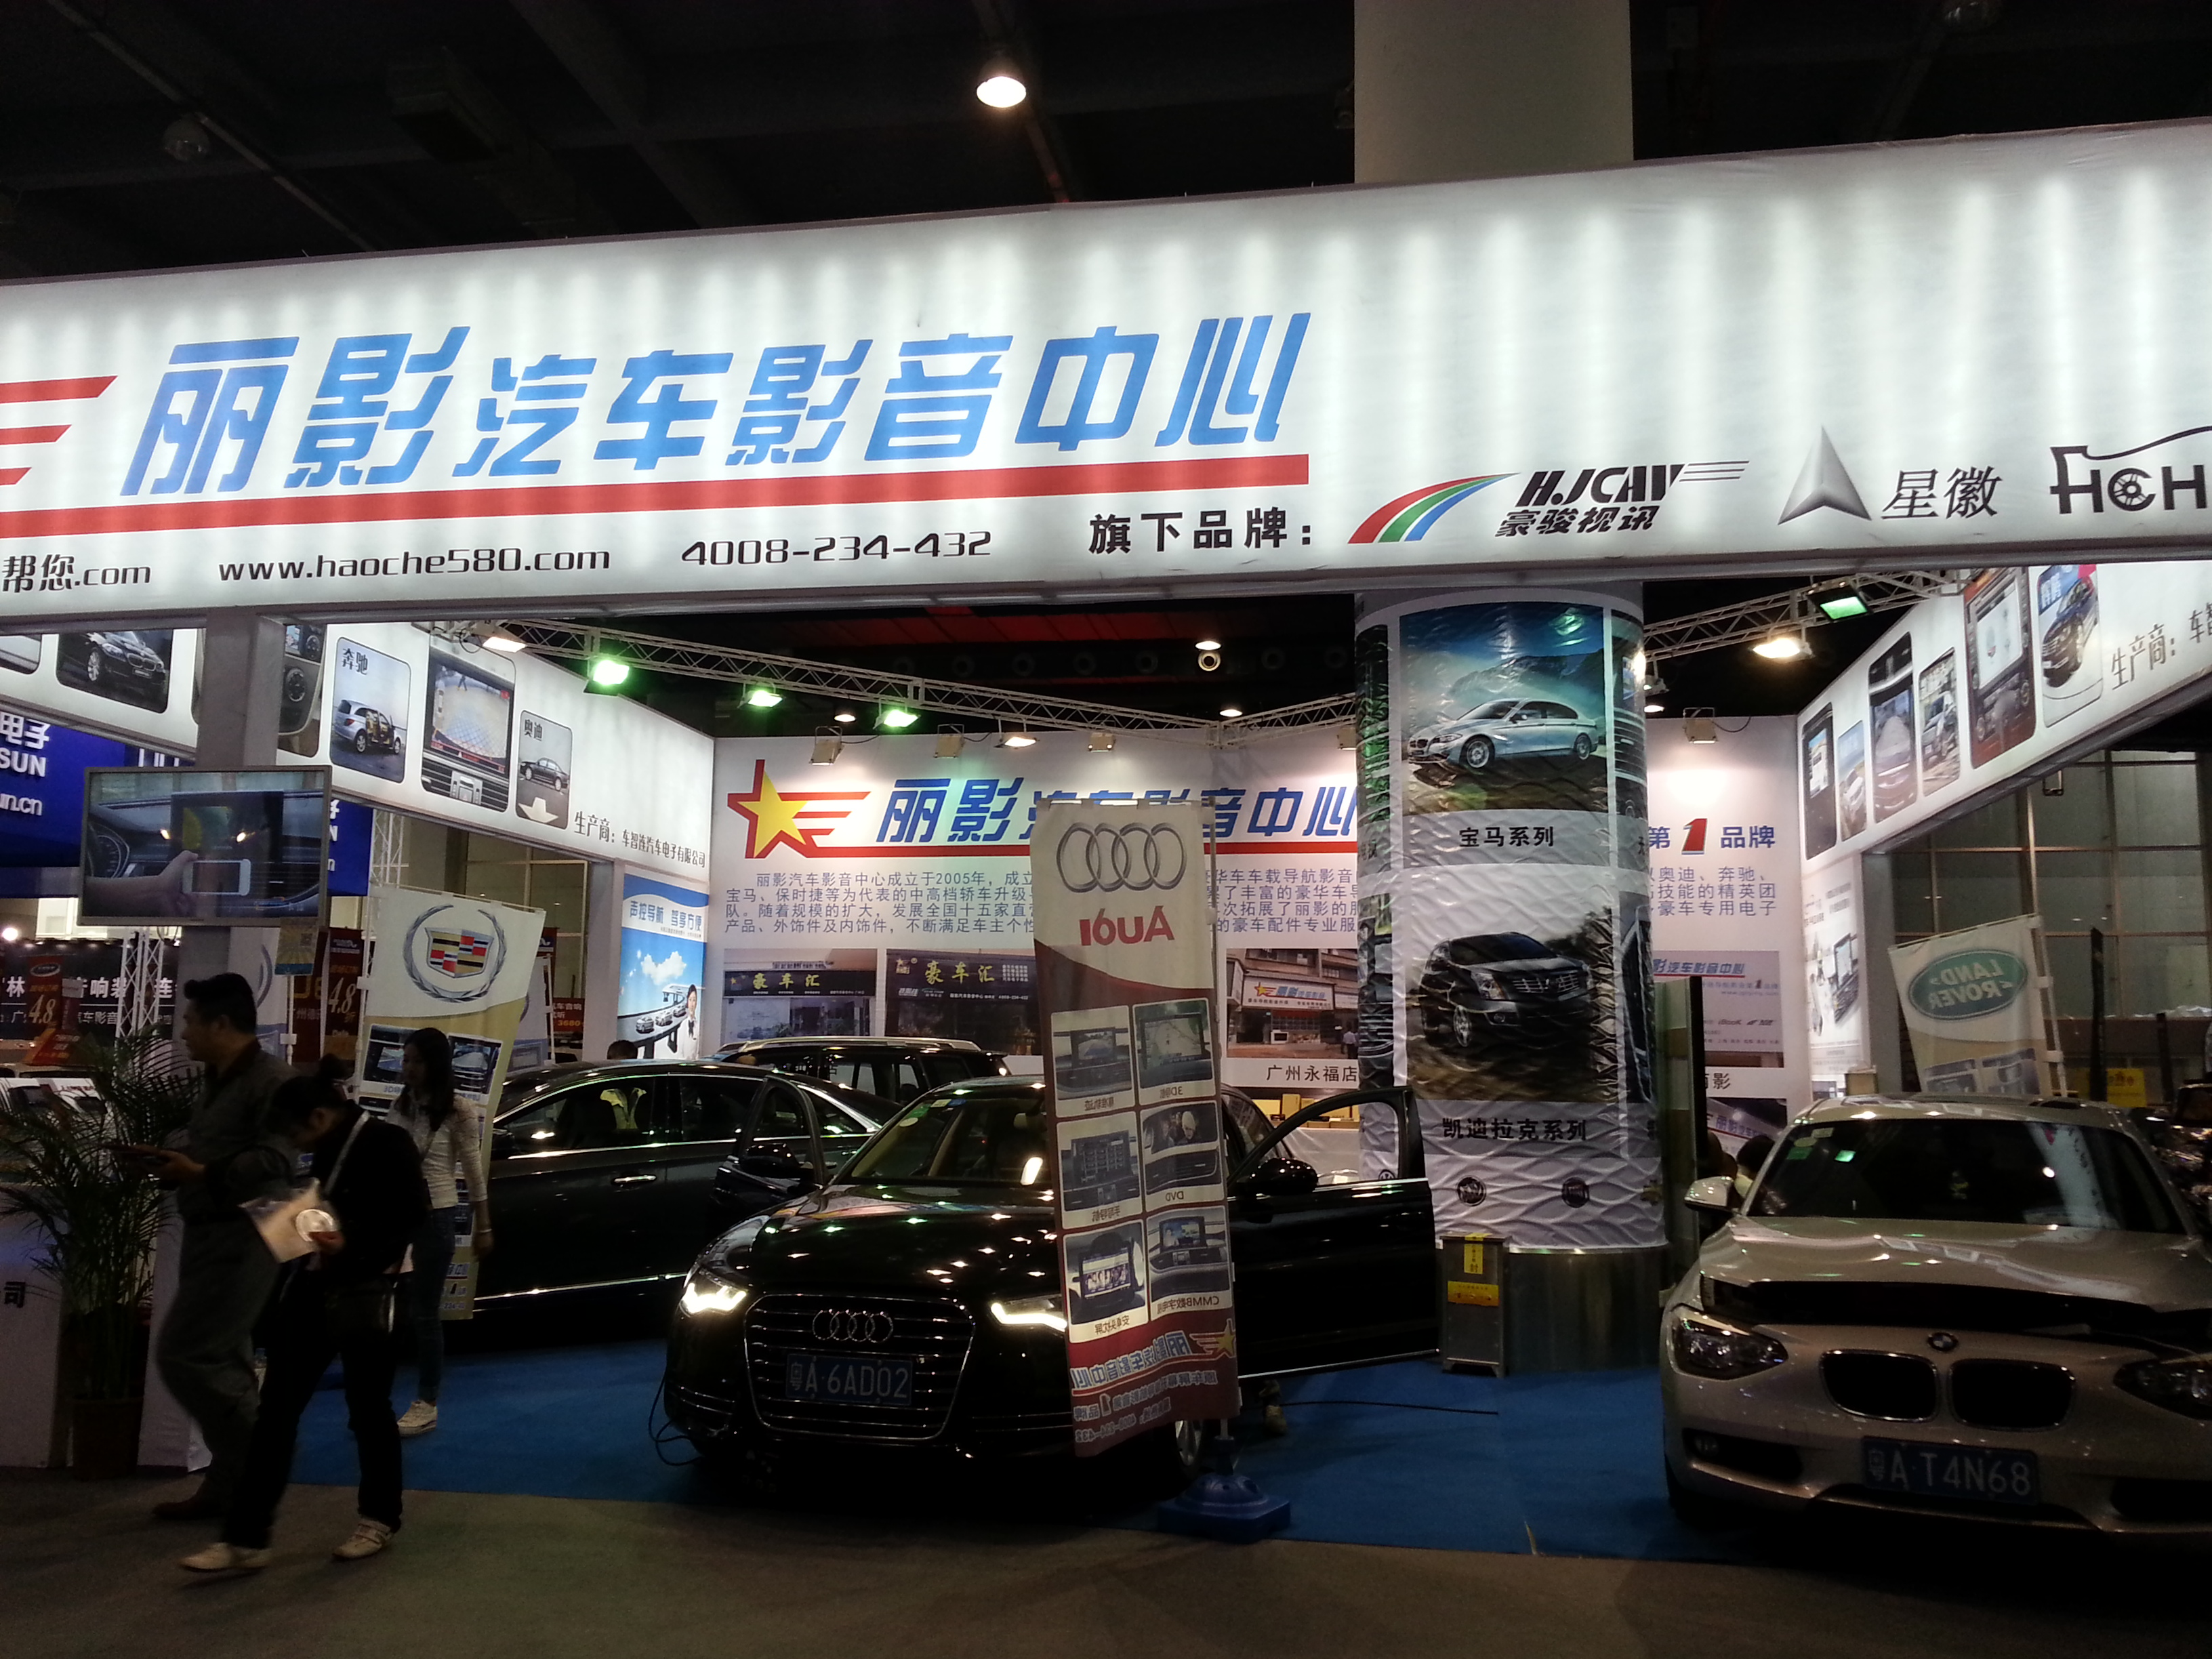 Automotive electronics on display at the 2013 Guangzhou International Auto Parts & Accessories Exhibition.